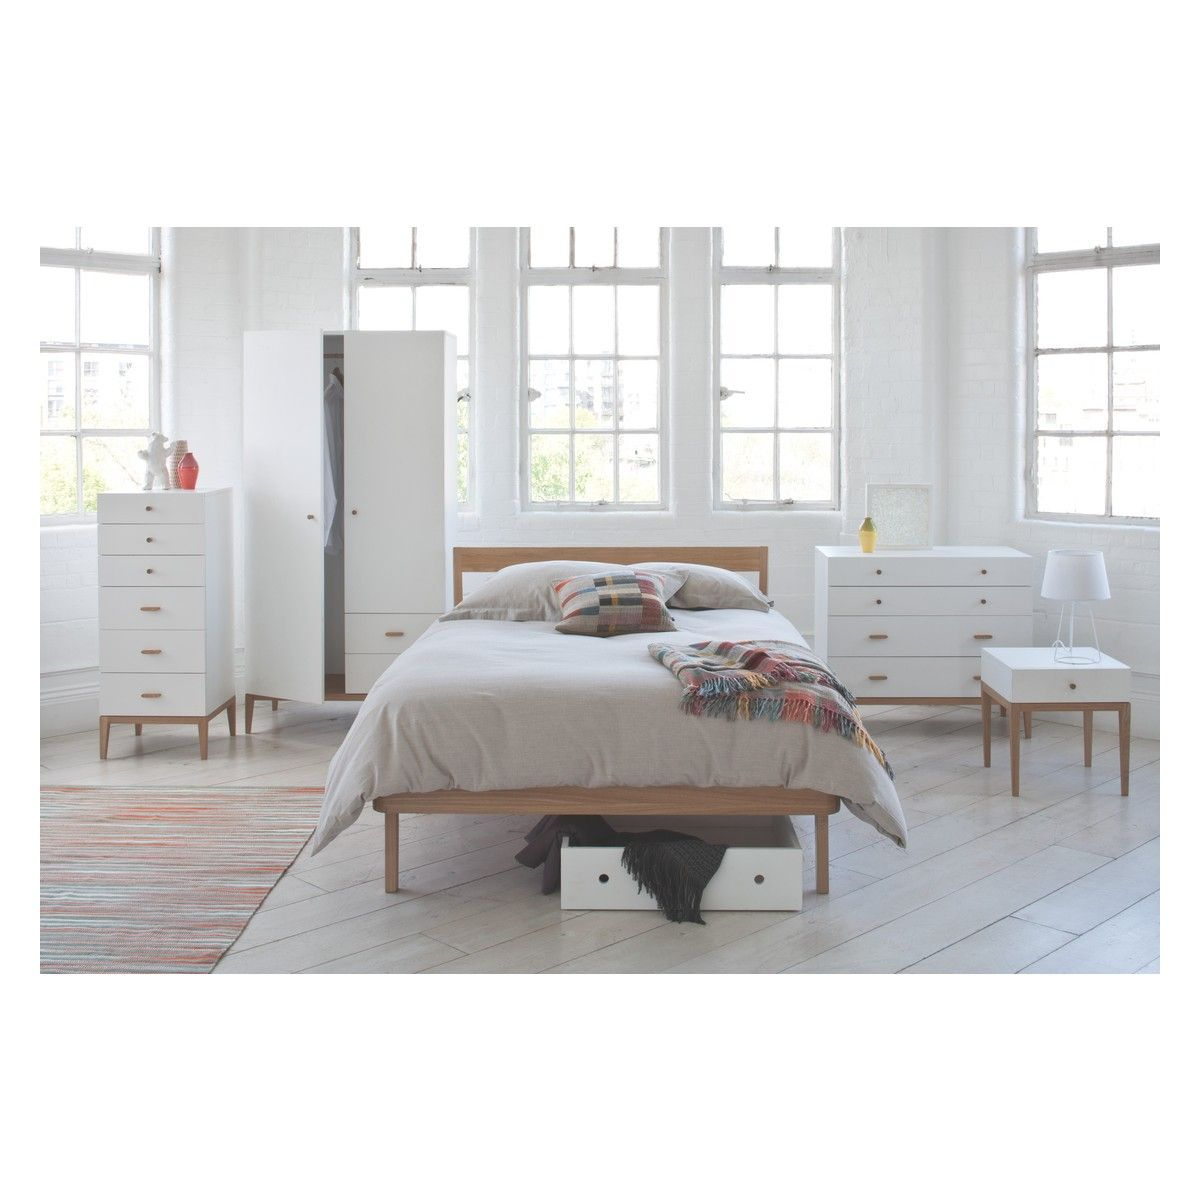 TATSUMA Ash uk double bed 135cm | Buy now at Habitat UK | Beds in ...